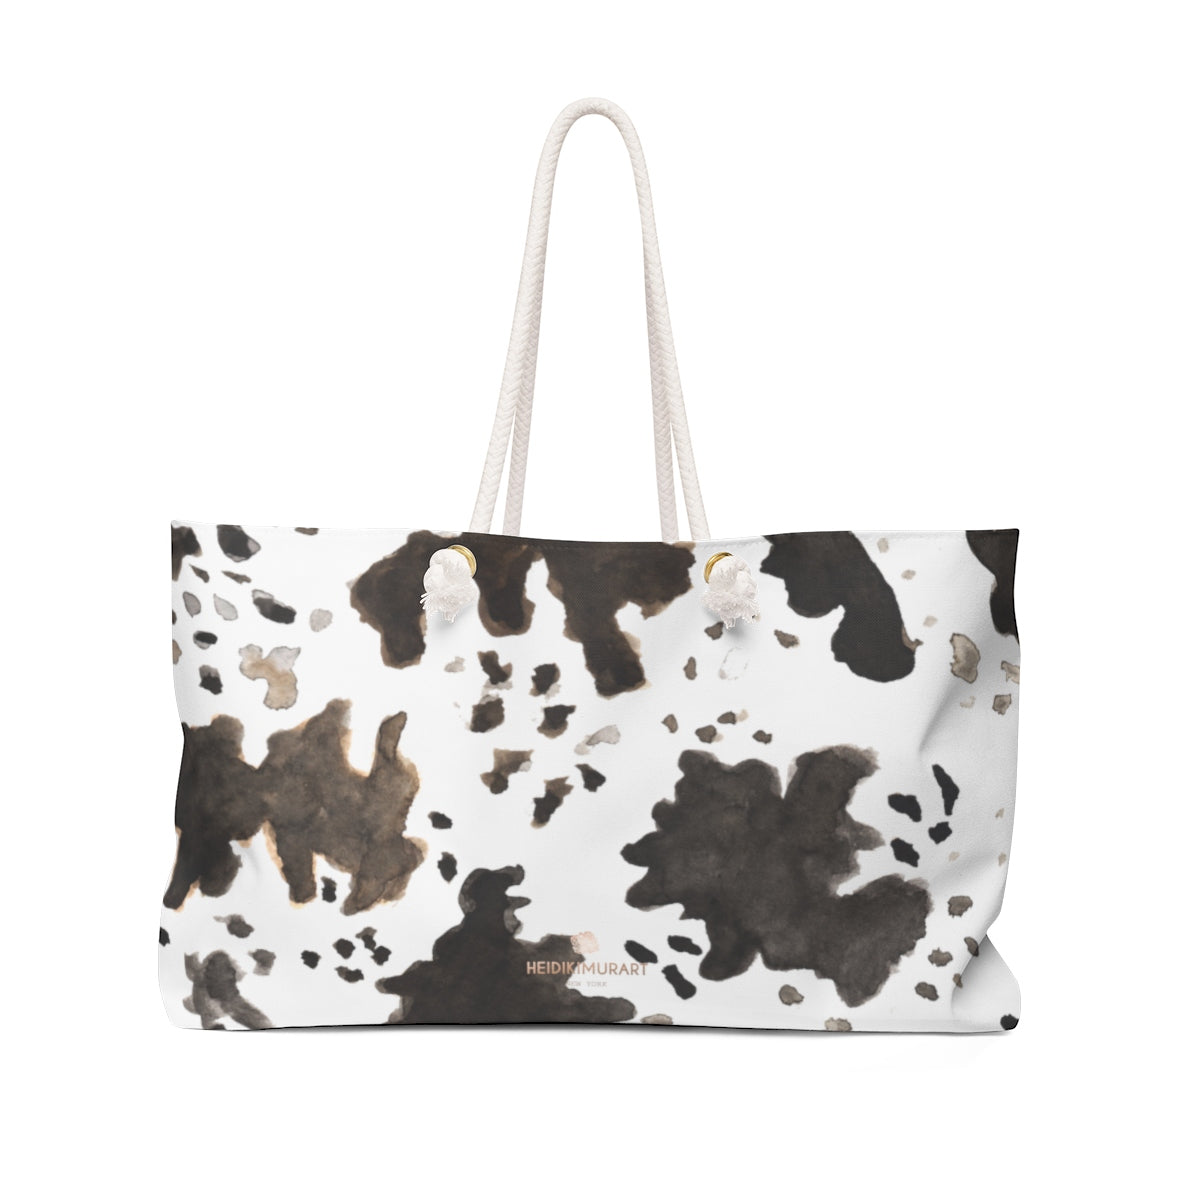 "Cow Animal Print Black Brown White 24""x13"" Large Size Weekender Oversized Tote Bag-Weekender Bag-24x13-Heidi Kimura Art LLC"